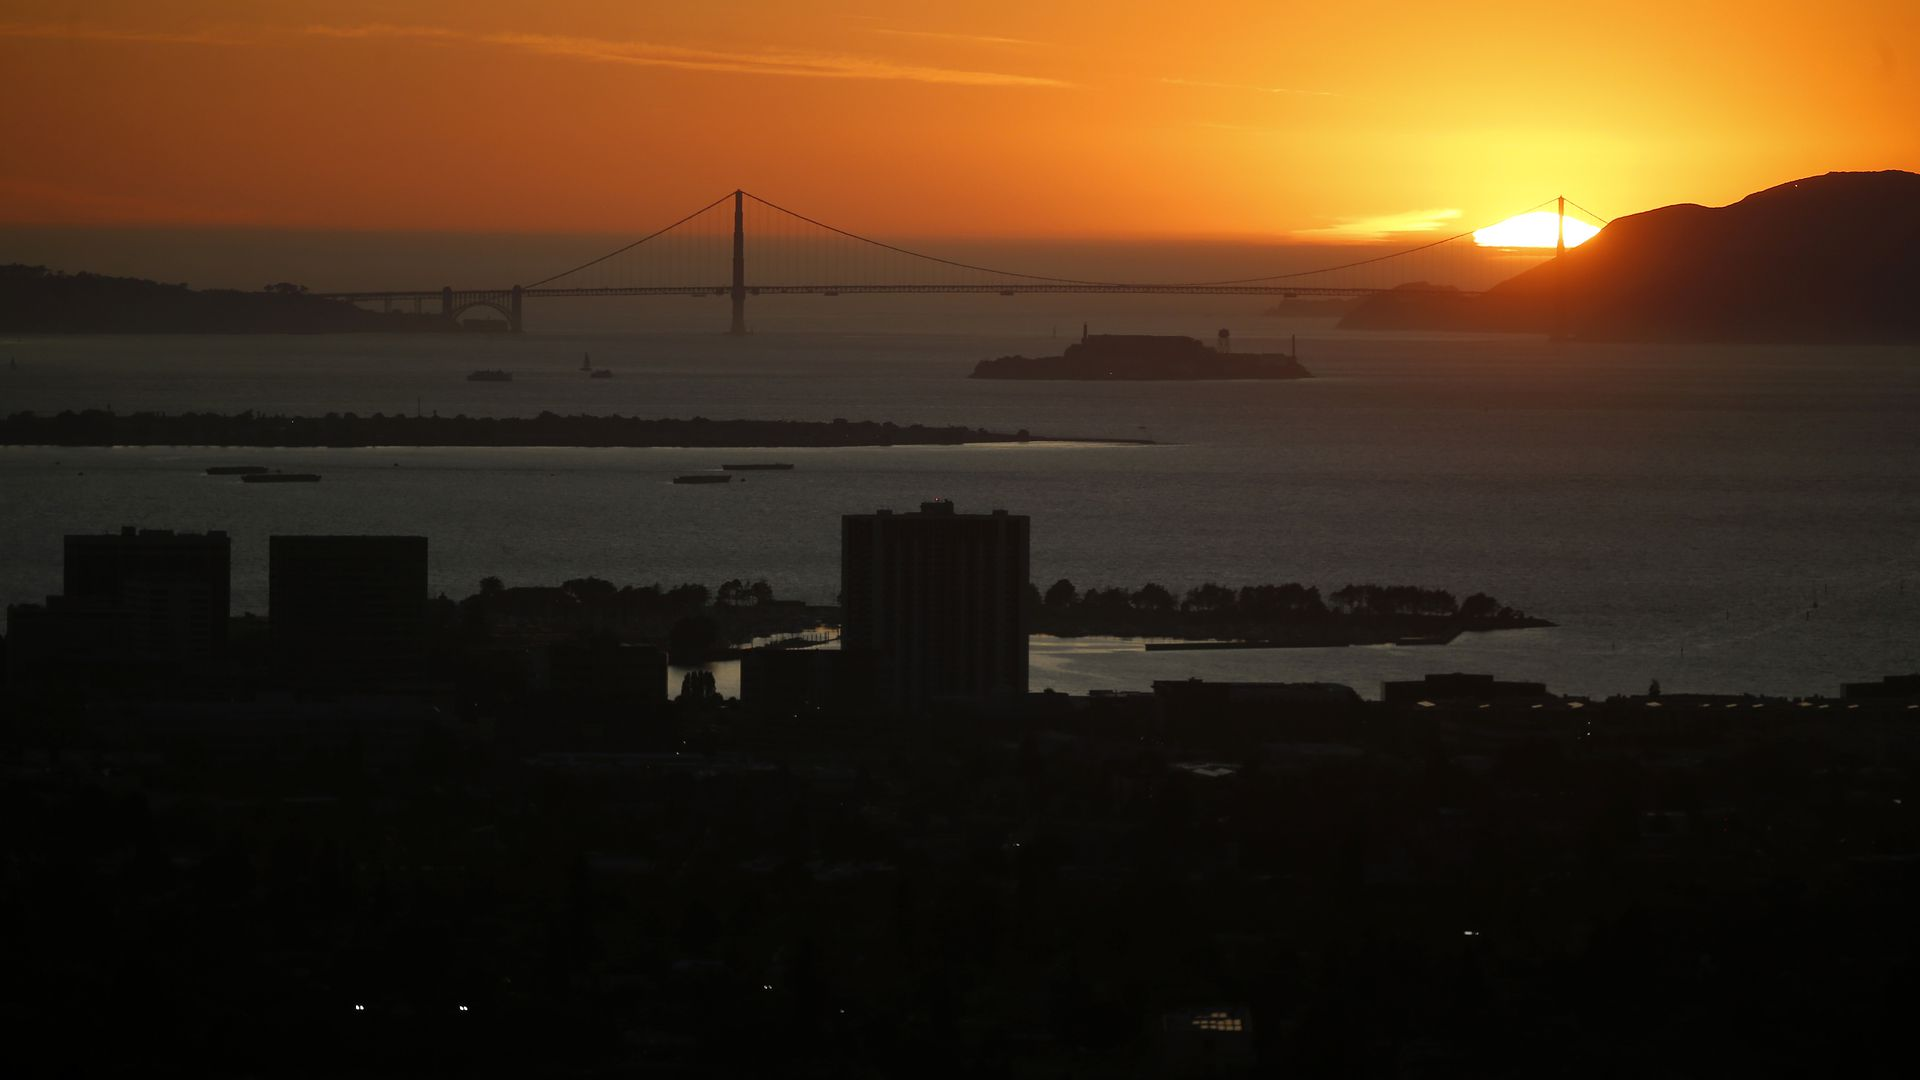 This image shows a dark San Francisco skyline during a sunset, with the darkened Golden Gate bridge in the distance